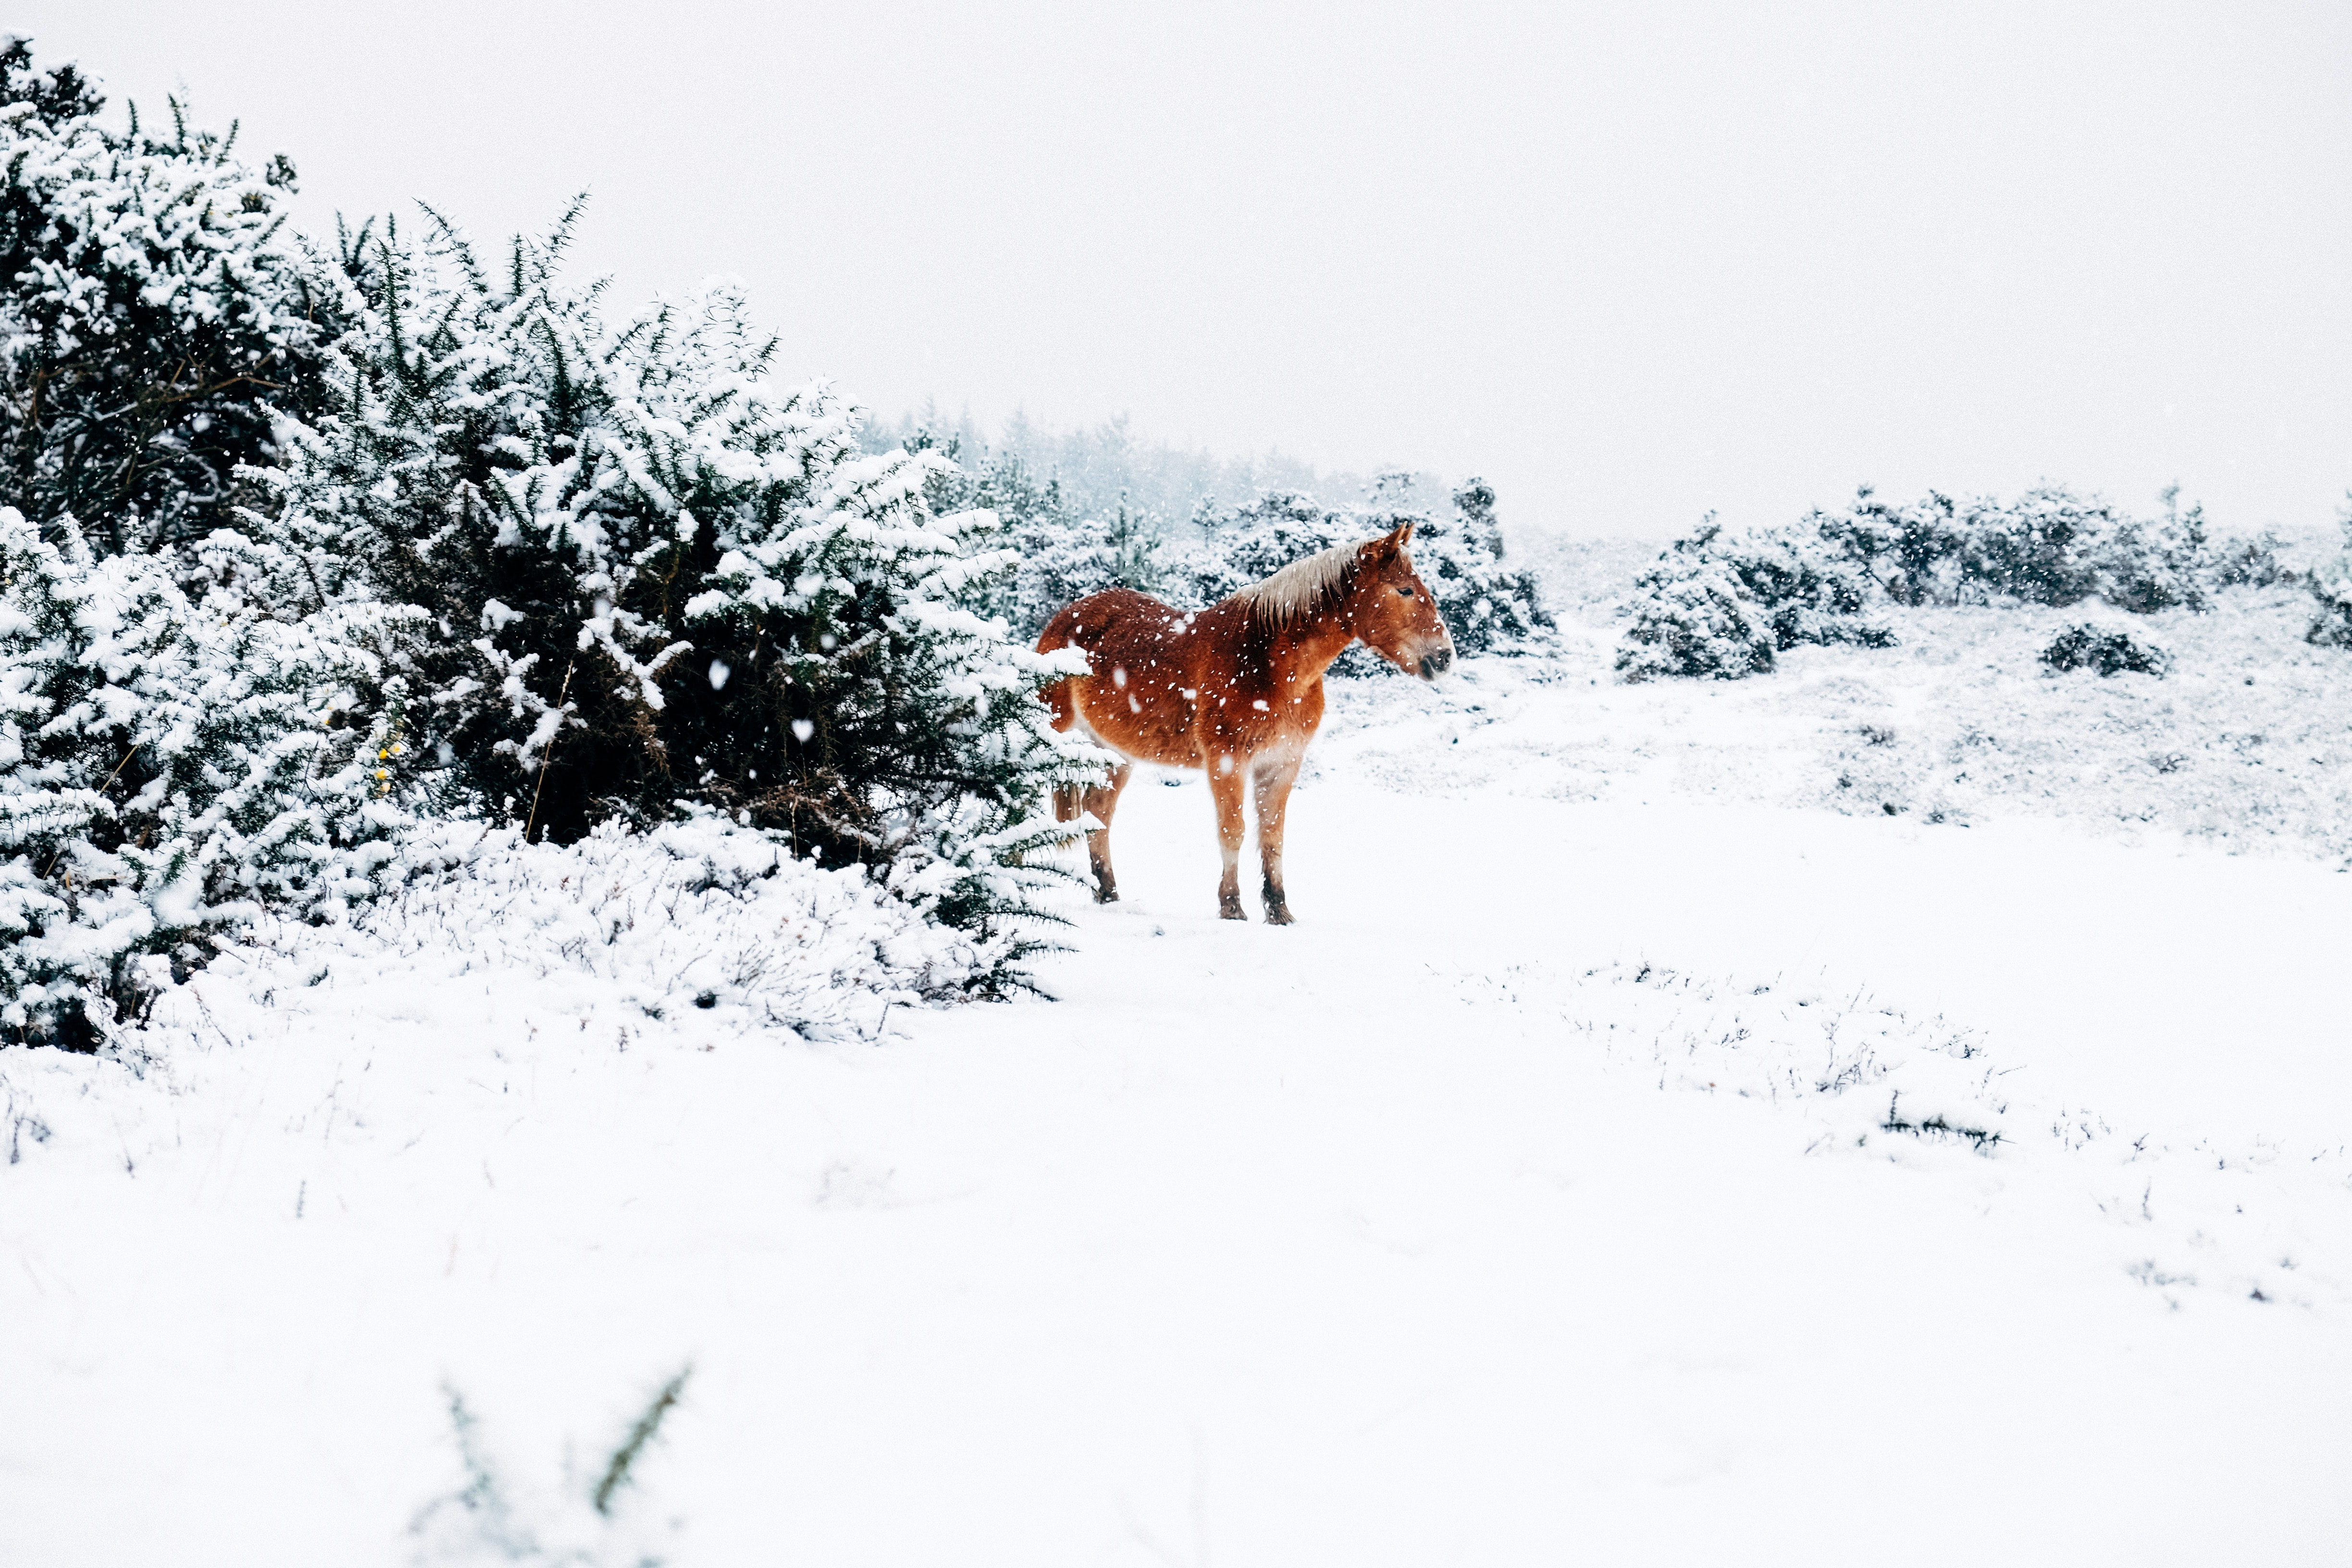 A chestnut horse stands near snow-topped bushes as snow falls on the ground